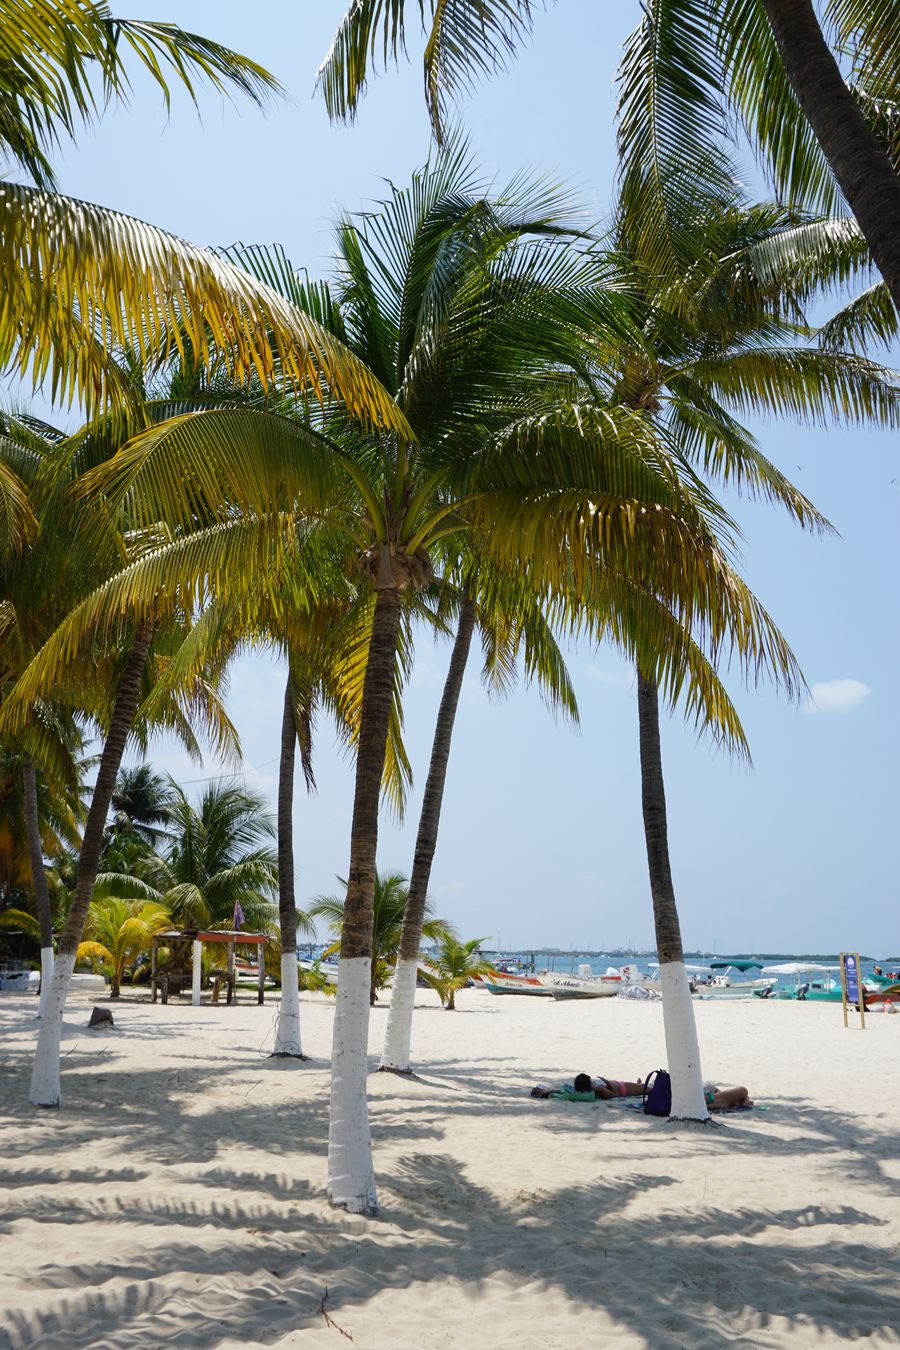 2016 Beach Beauty In Nature Clear Sky Isla Mujeres Mexico Nature Outdoors Palm Tree Relaxation Sand Sea Shadow Sky Tourism Tree Vacations Water イスラムヘーレス ビーチ メキシコ ヤシの木